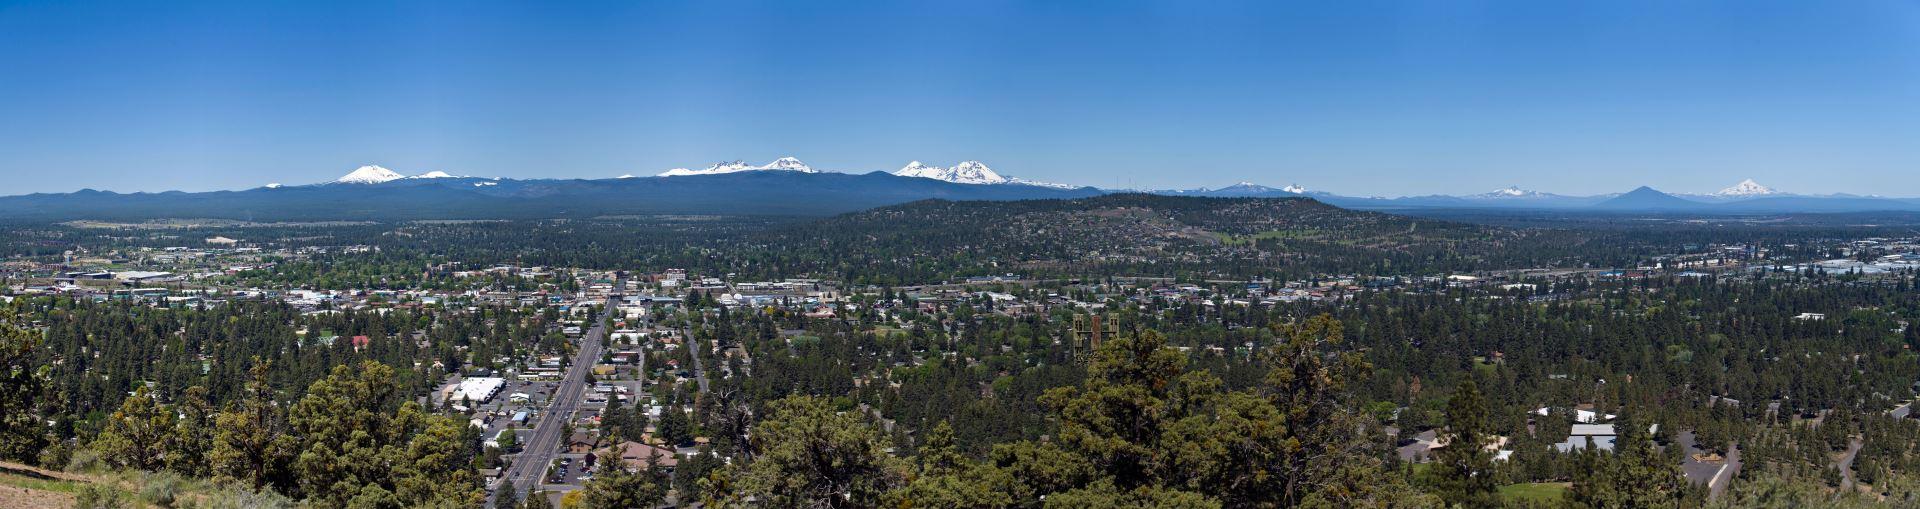 aerial view of Bend Oregon